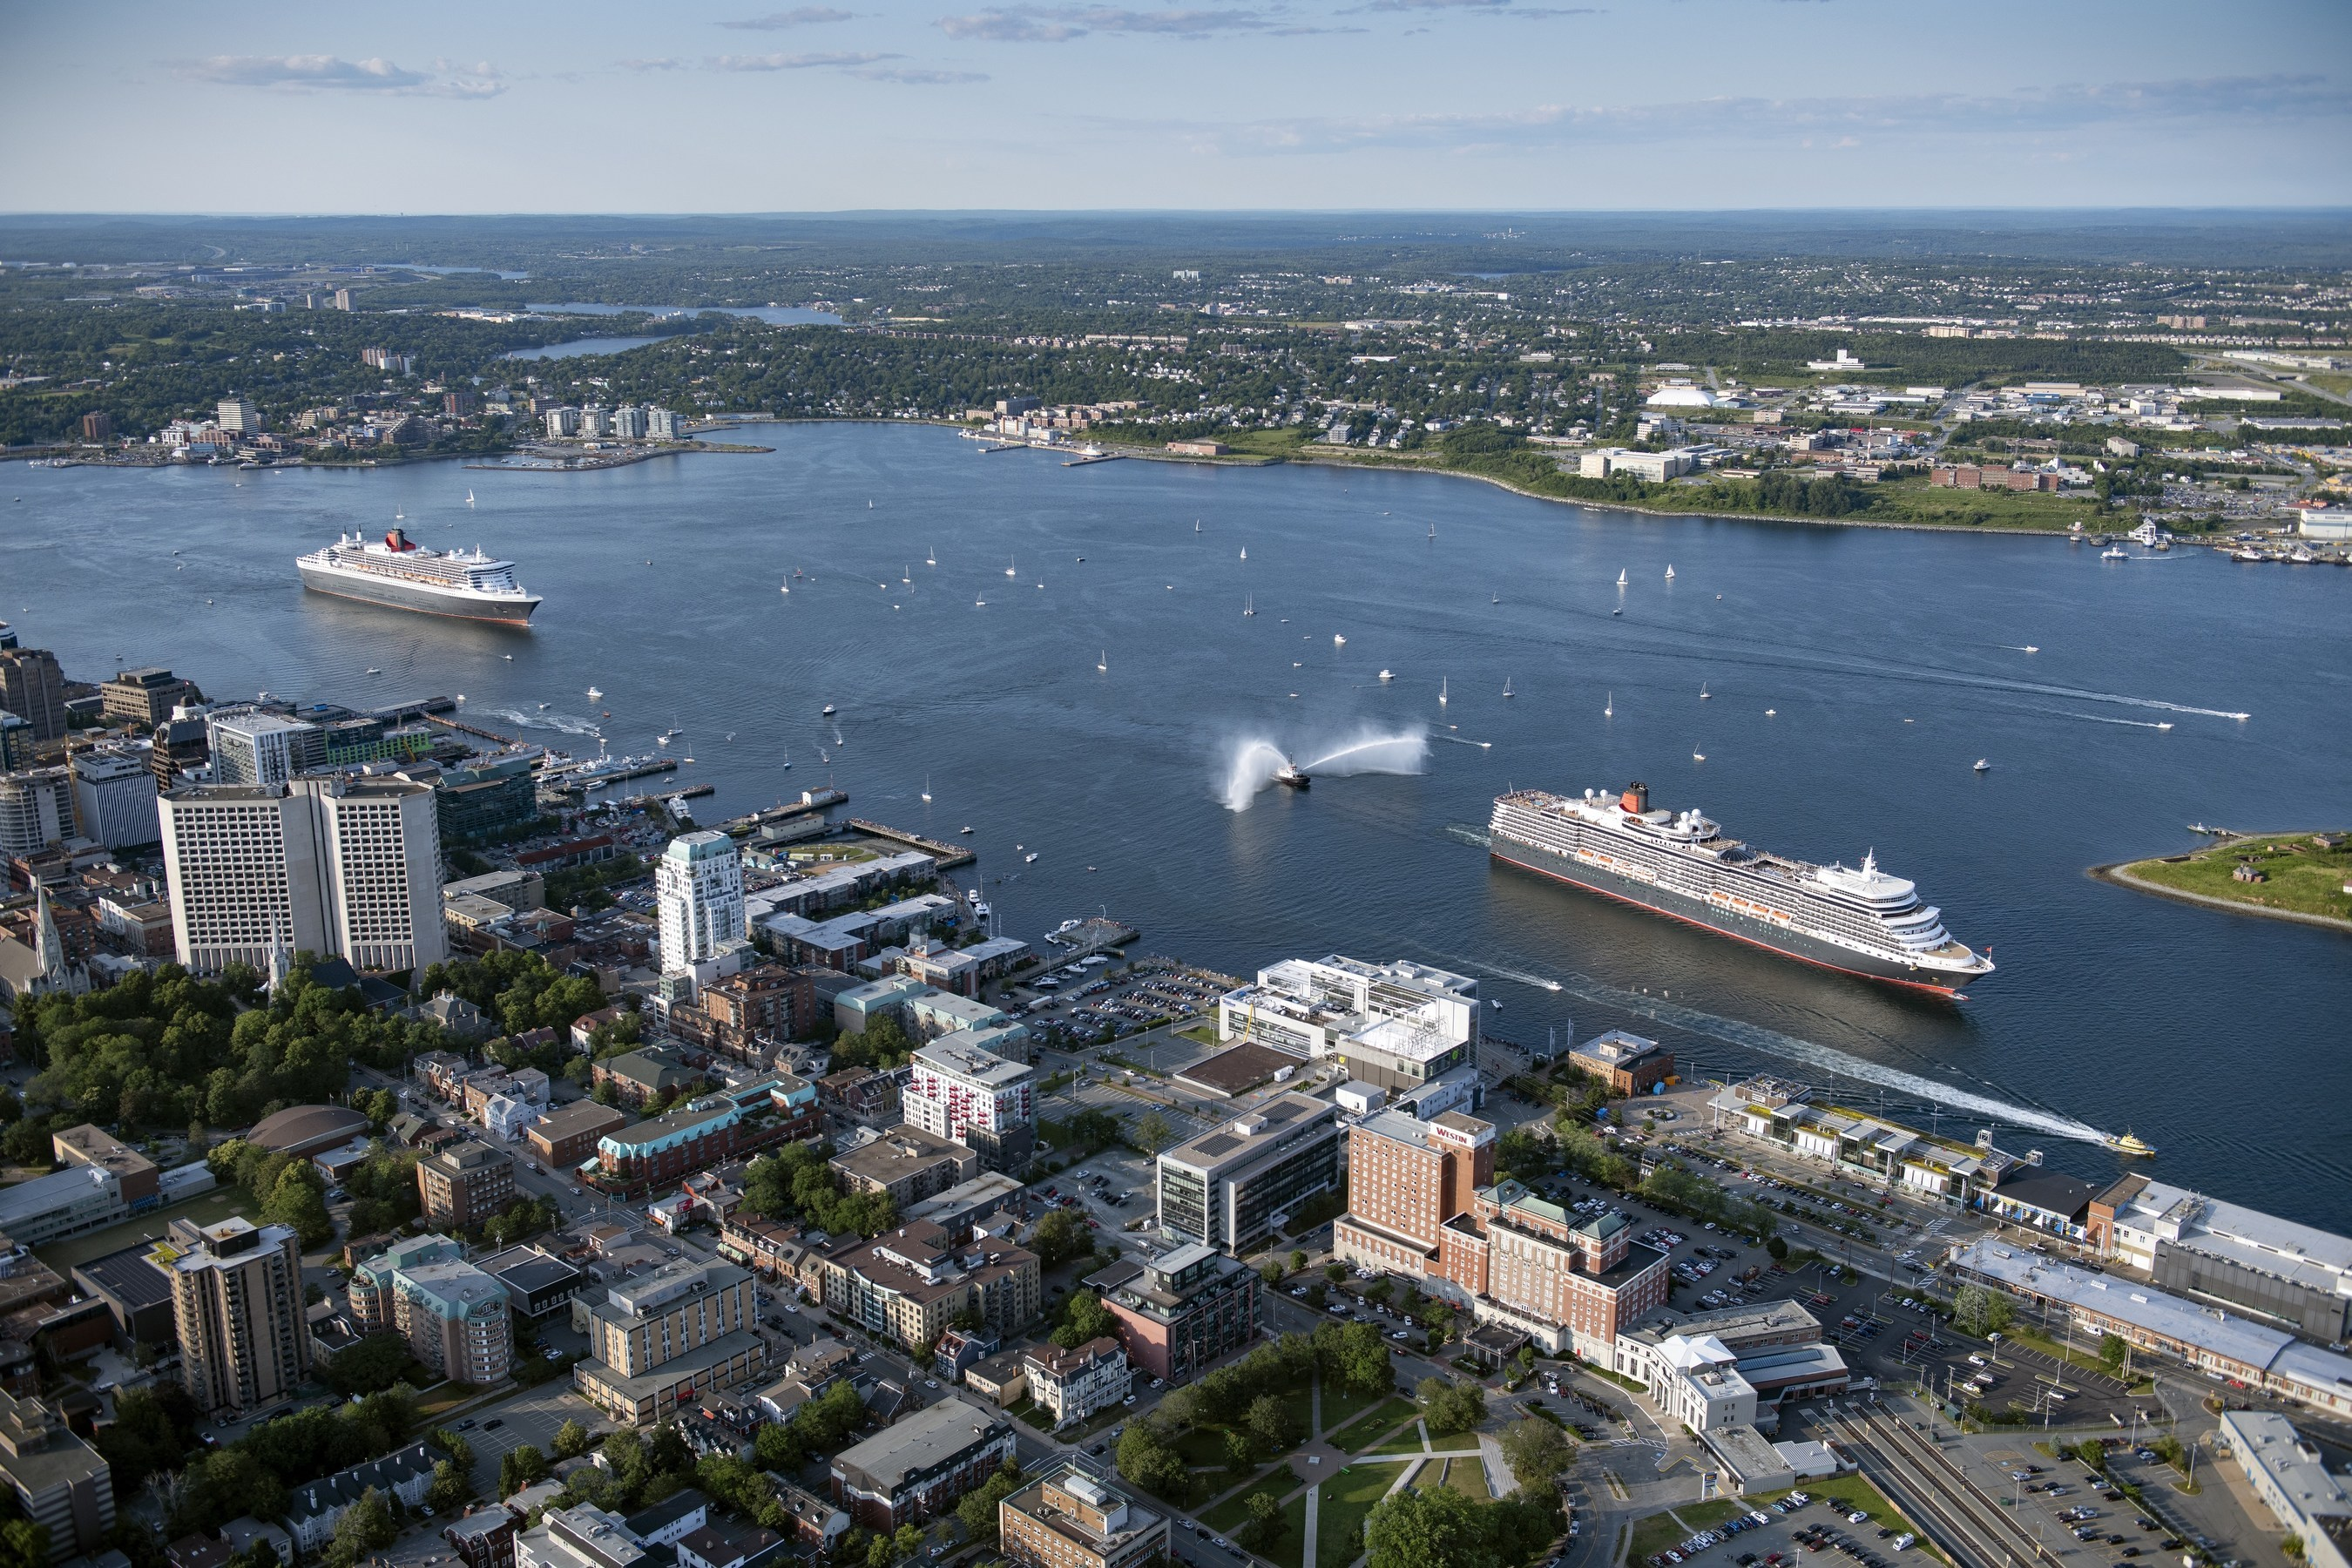 Cunard's flagship ocean liner Queen Mary 2 follows sister ship Queen Elizabeth in Halifax, Nova Scotia harbor on Friday, July 26, 2019. (Photo Credit: Steve Farmer for Cunard)